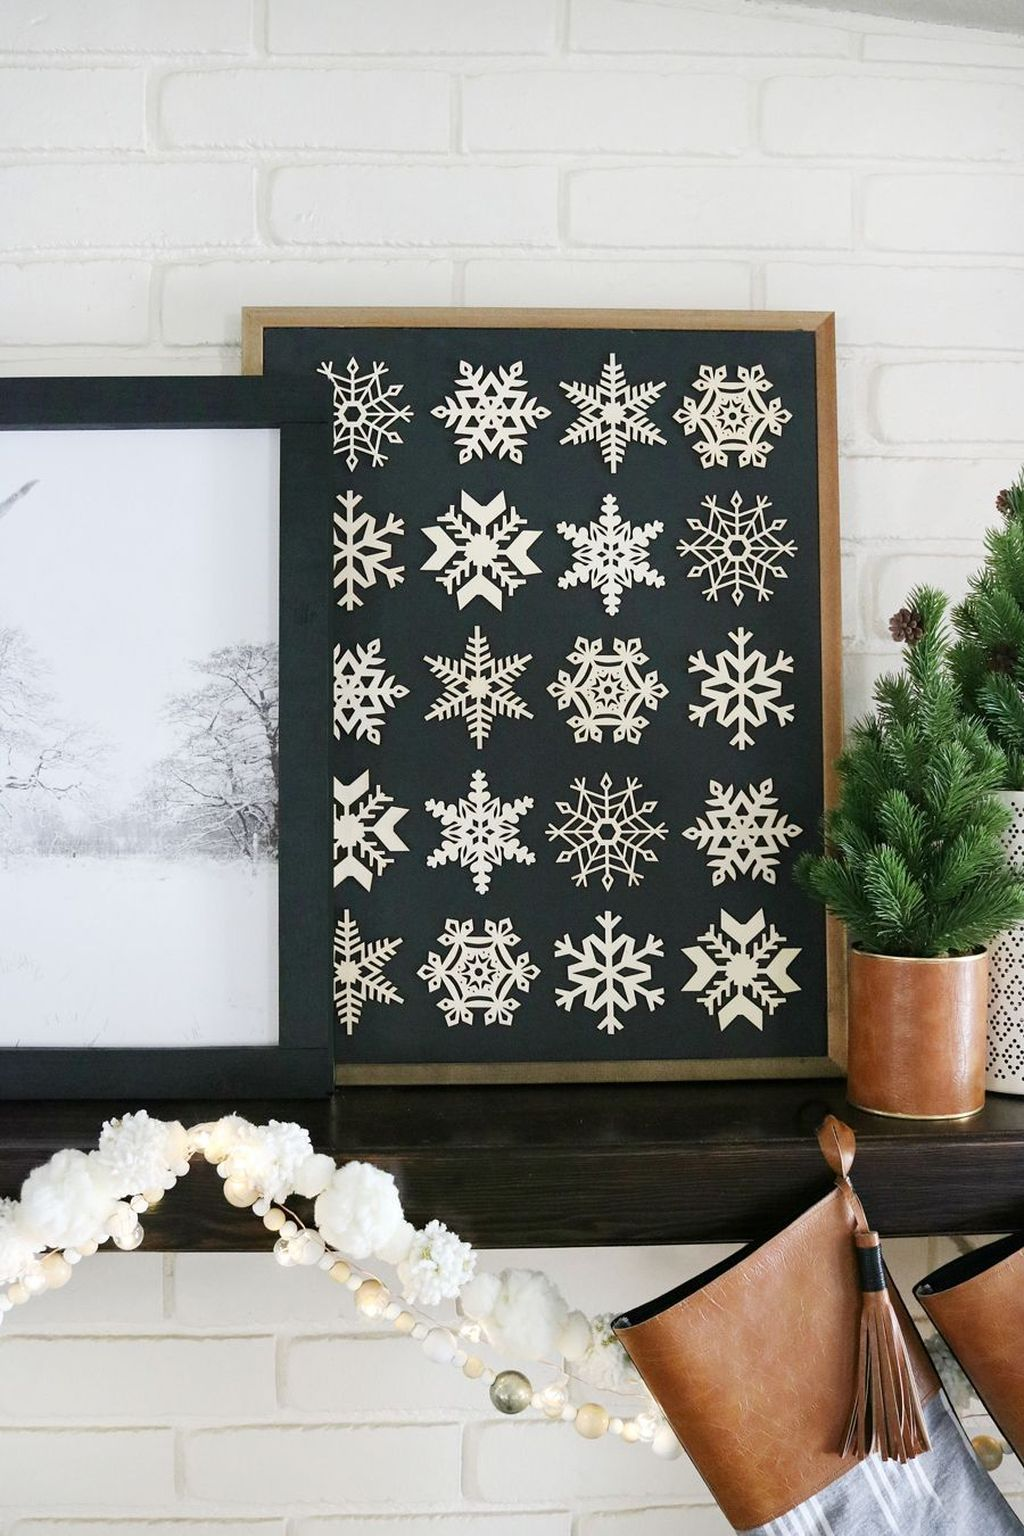 2020 Traditional Home Christmas Black And White Decorations Inspiring Christmas Wall Decor That You Want To Copy This Winter